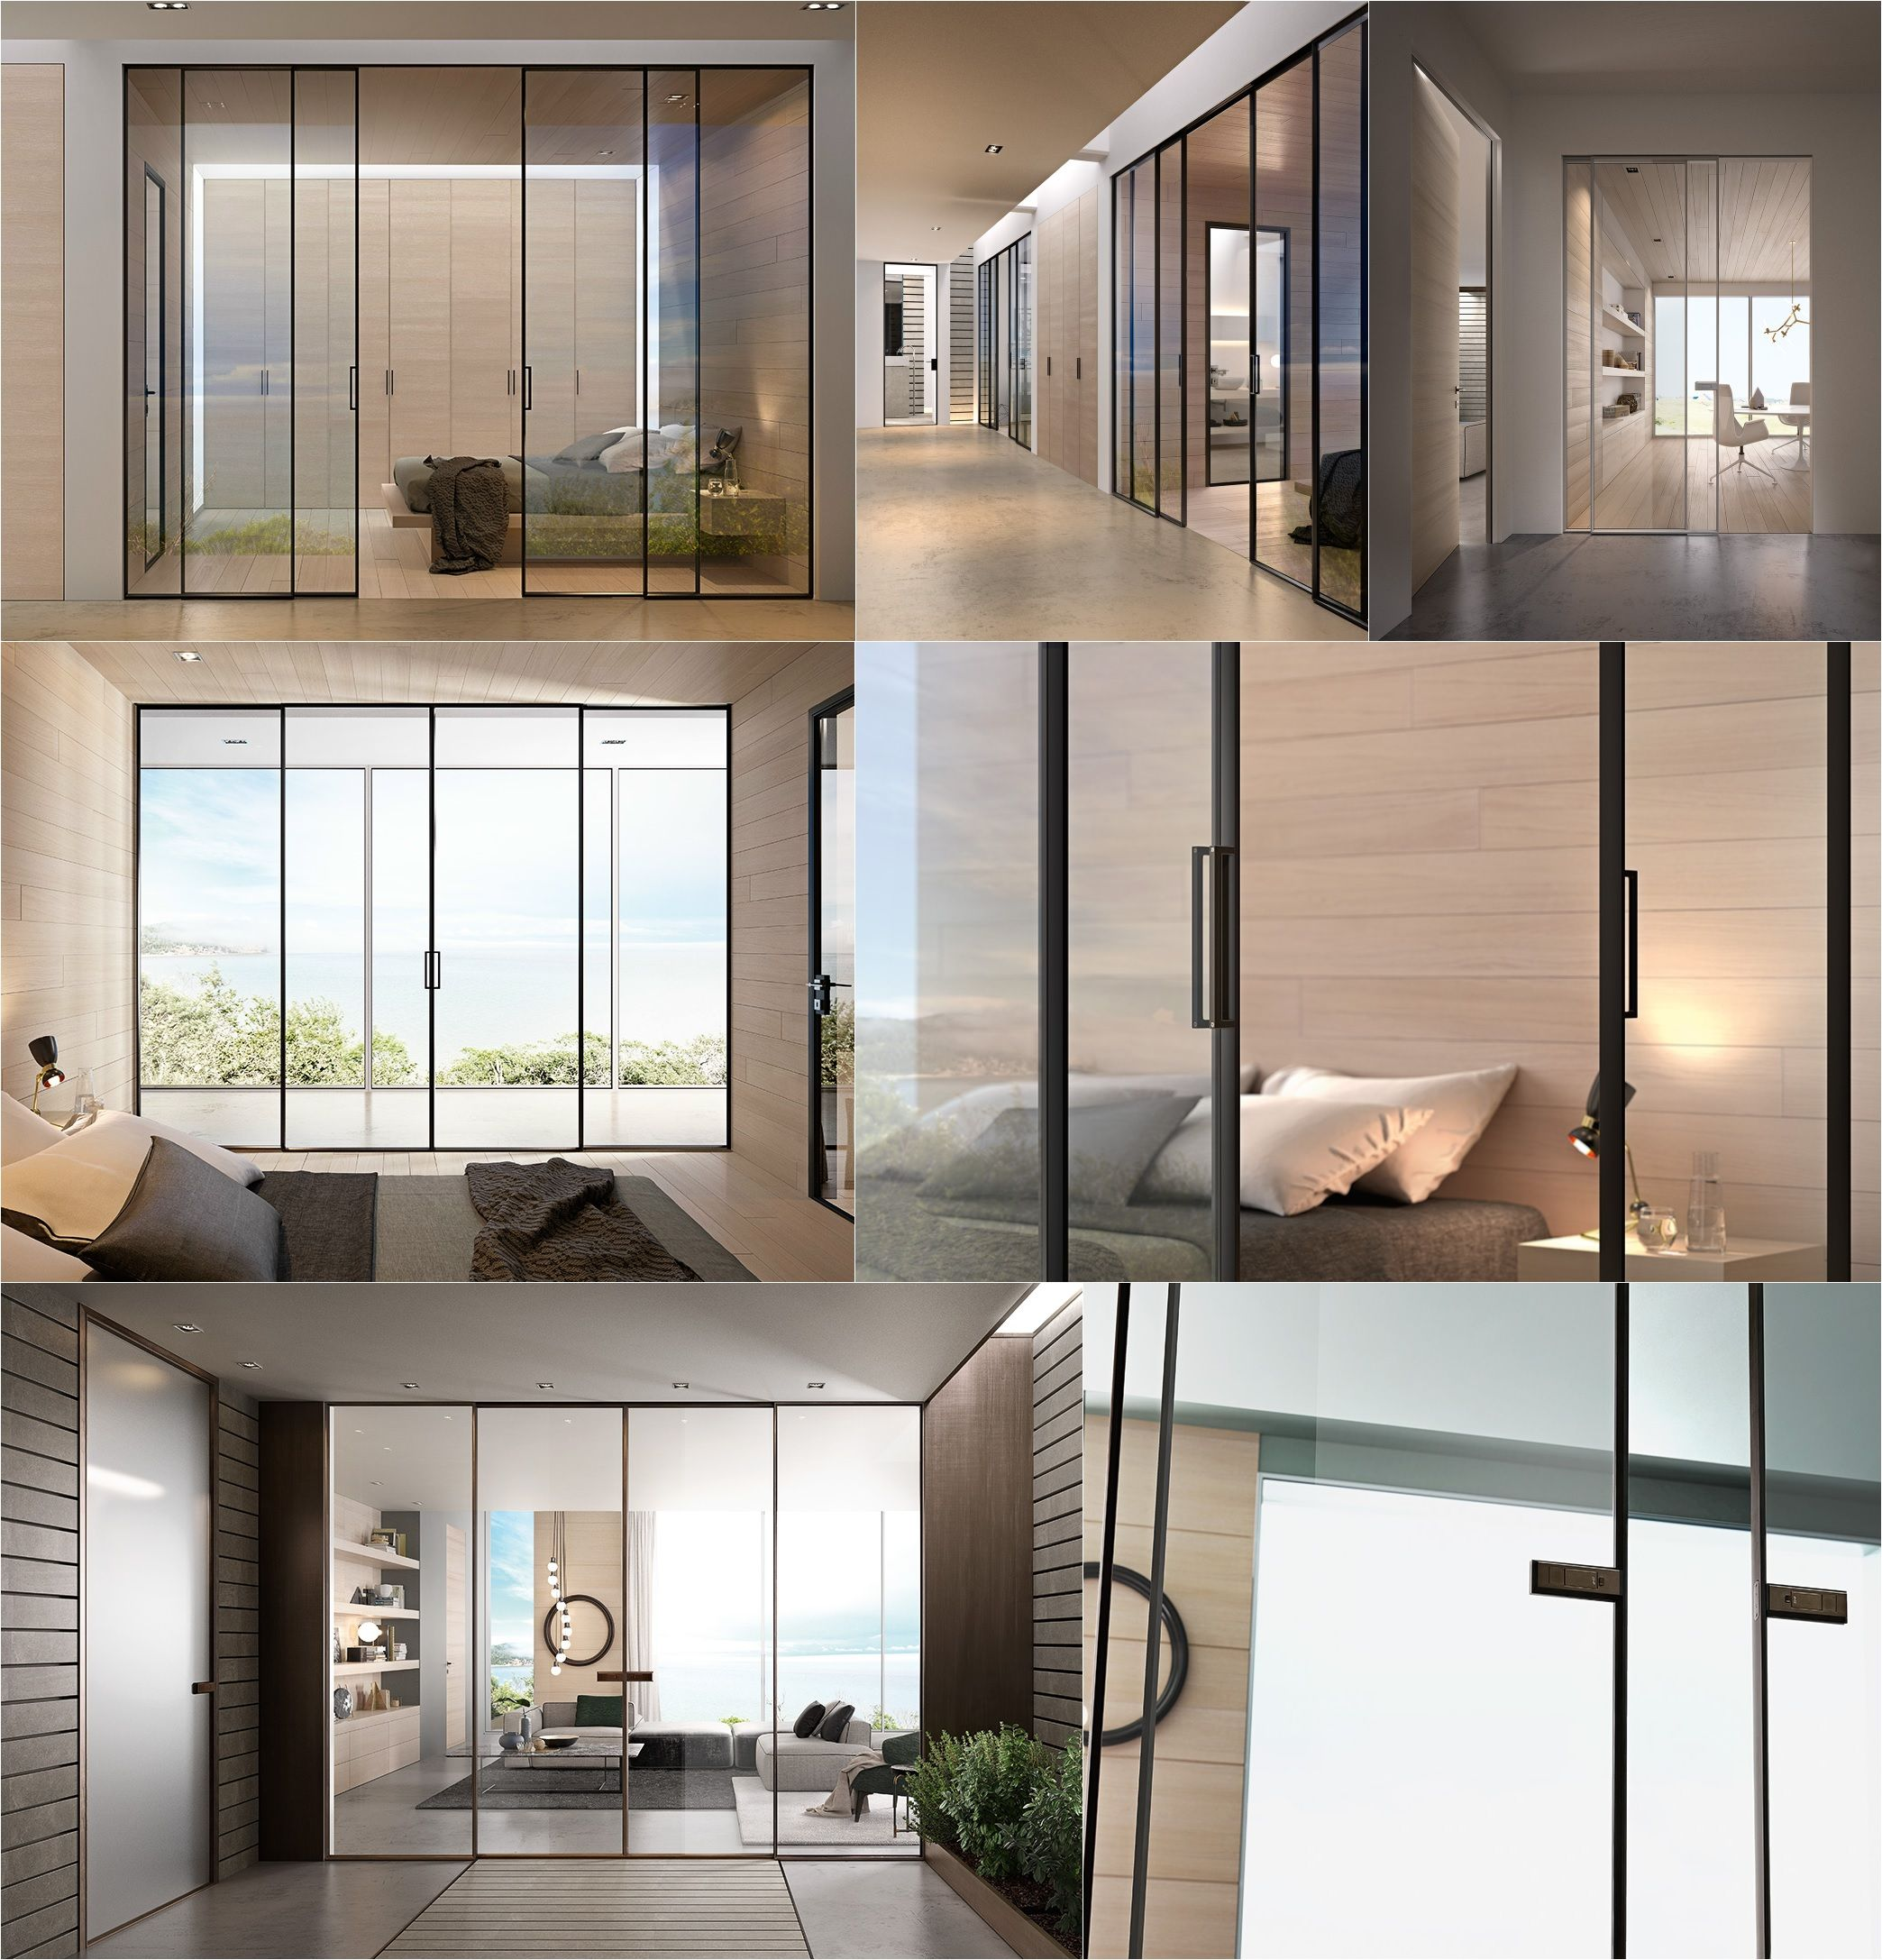 g-like collection glass sliding doors by gidea | garofoli | doors, Hause deko